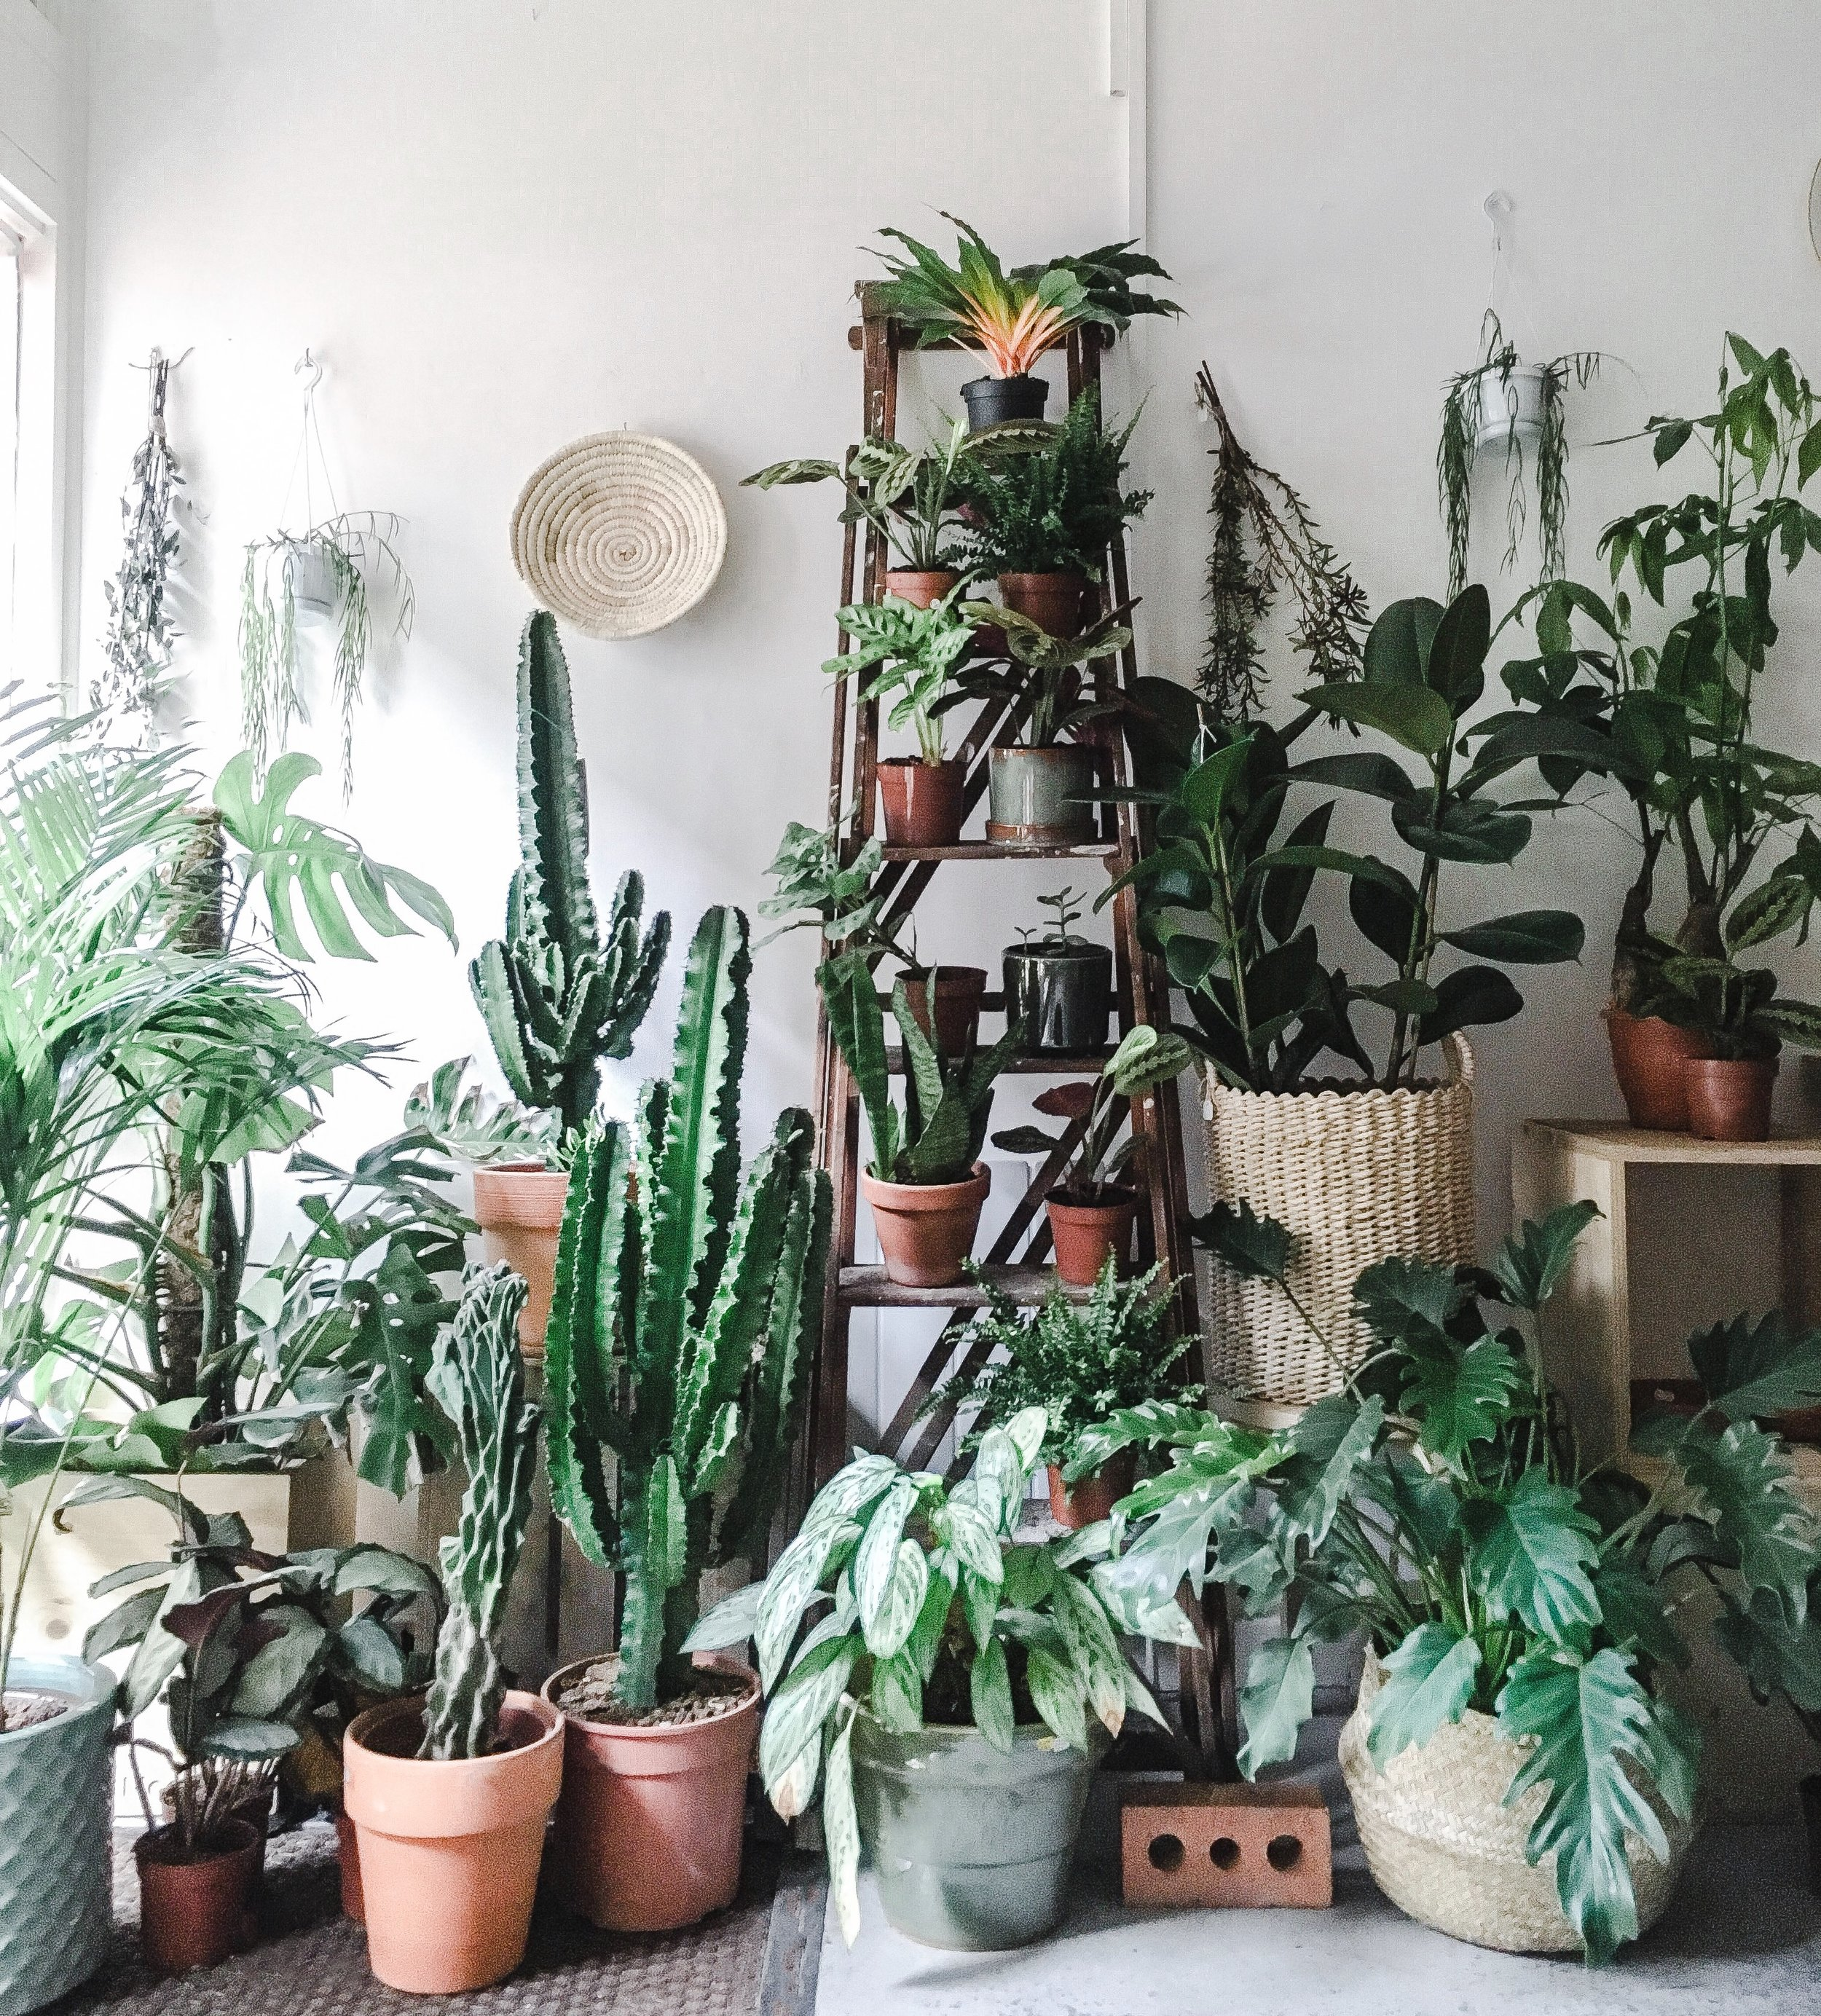 Unusual House Plants For Sale Where To Buy Houseplants In The Uk Jane Perrone